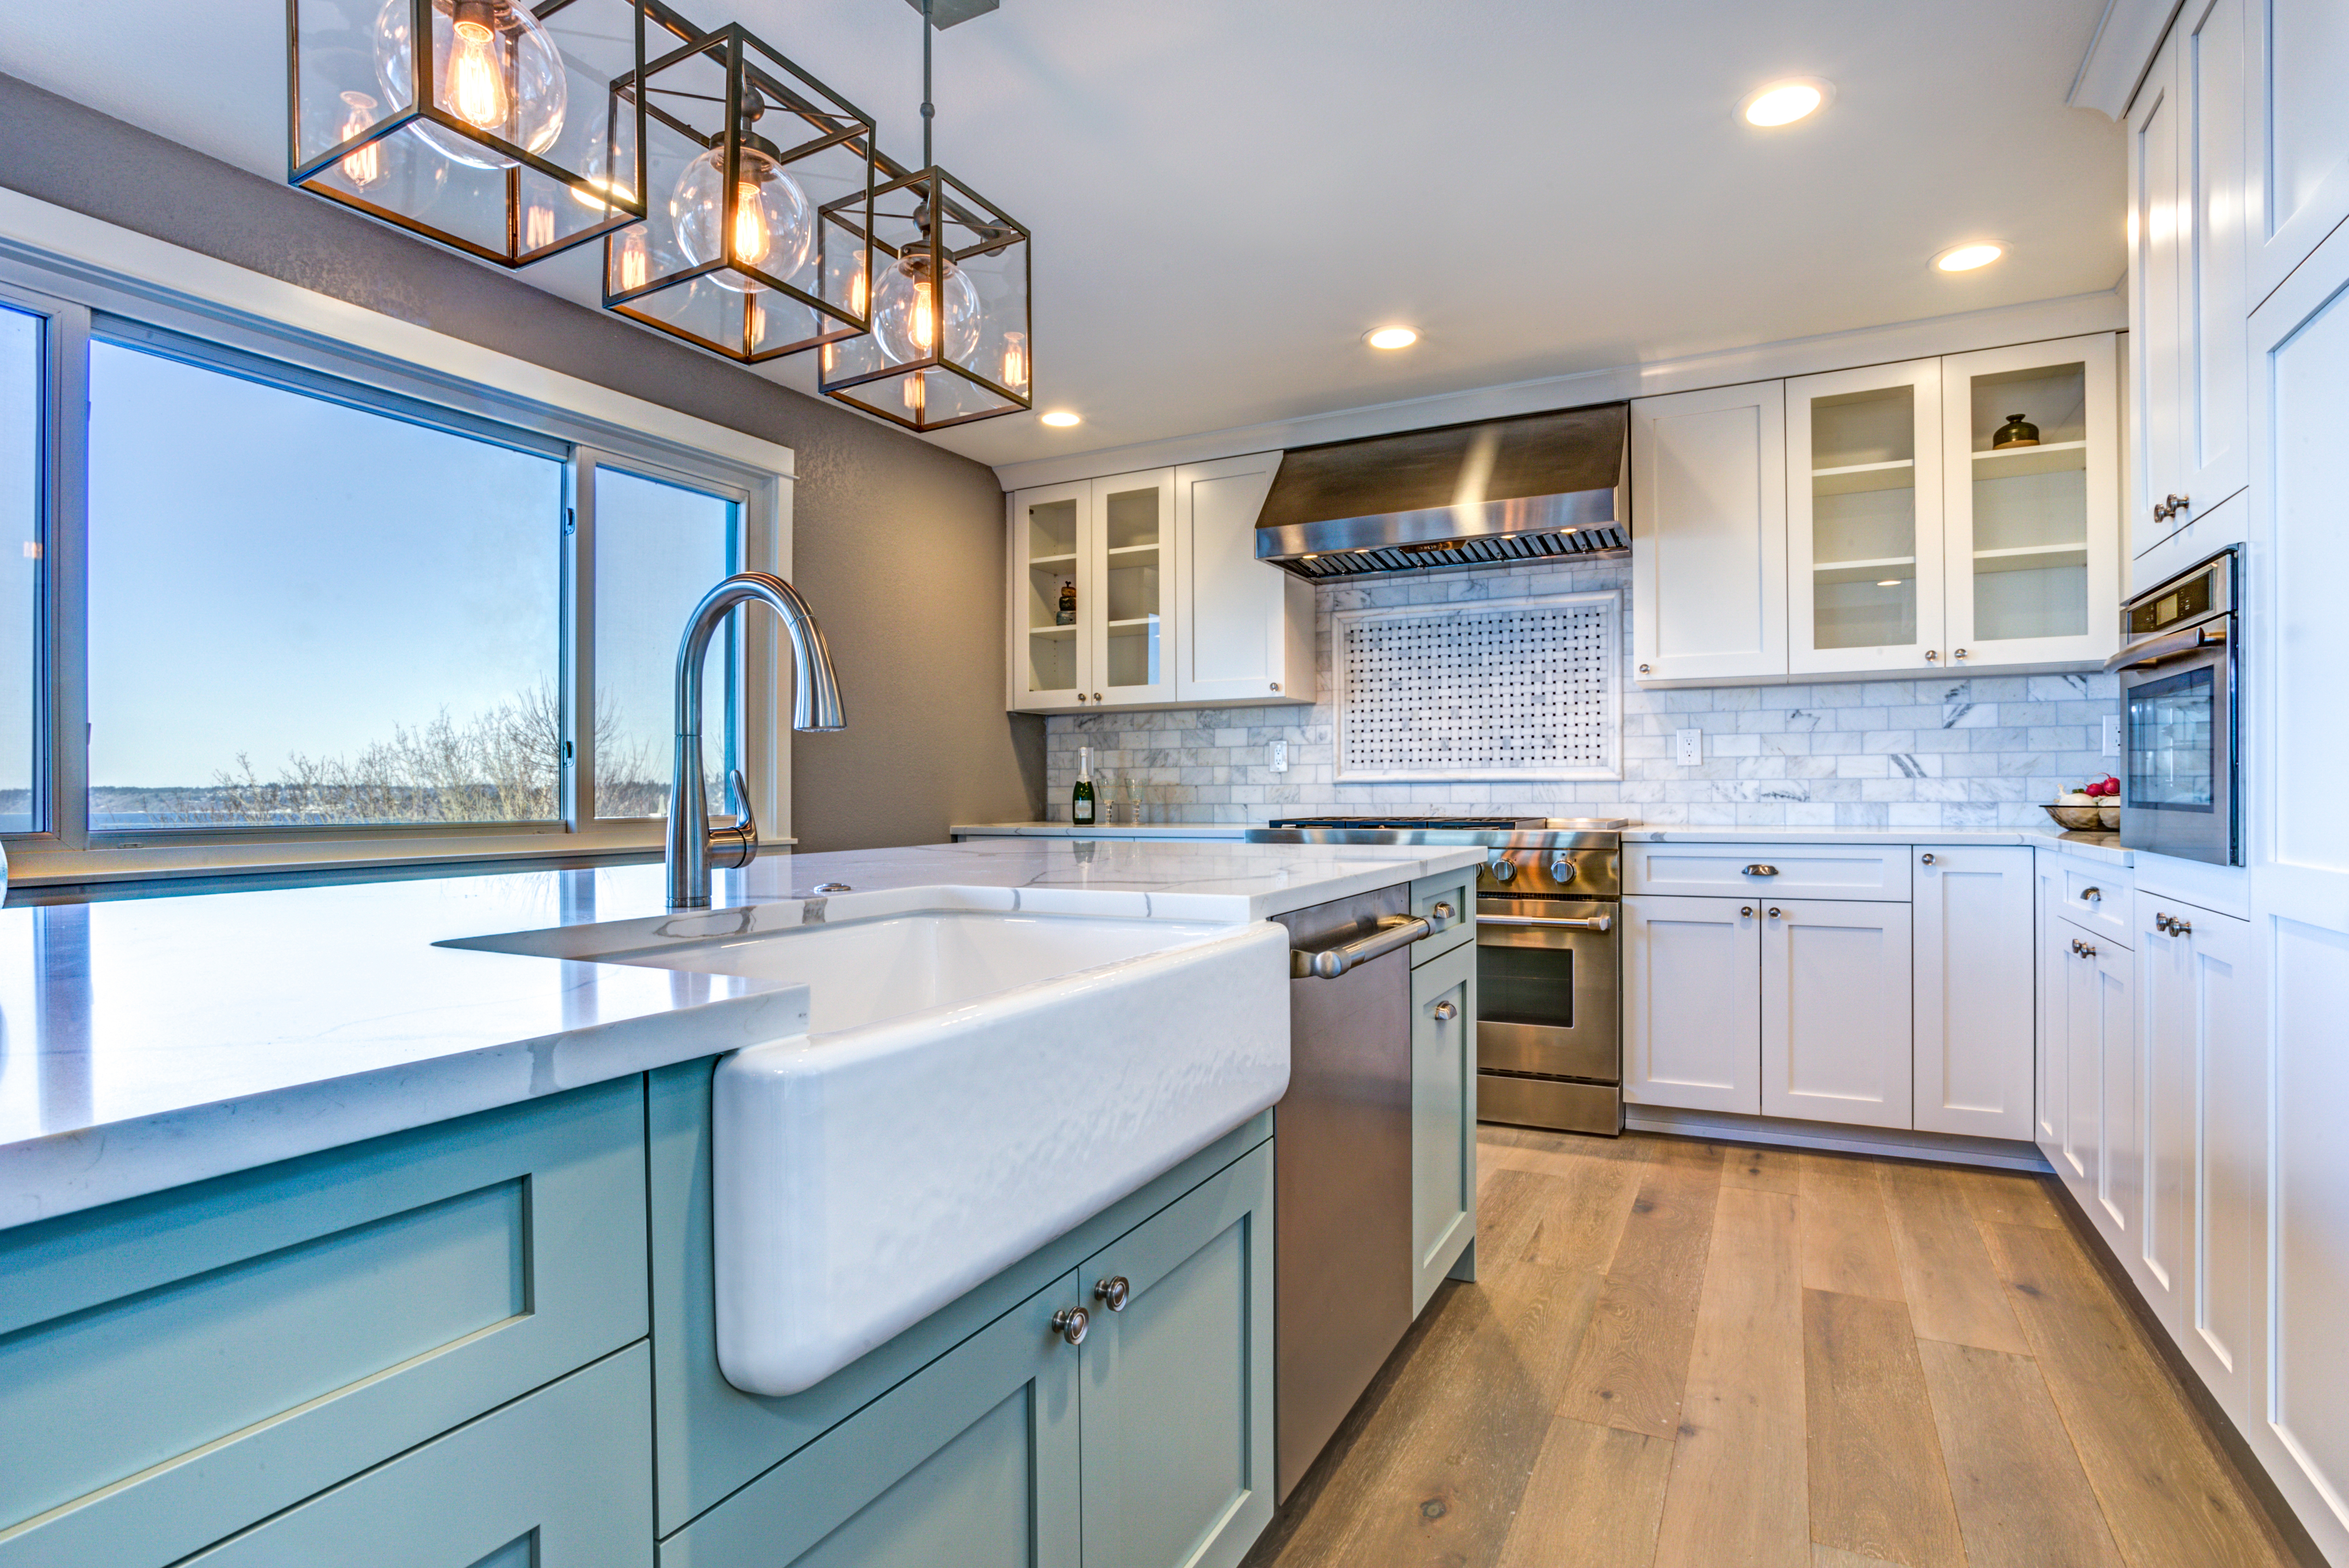 Renovation Contractors in Baton Rouge: The Best Floors for Your New Kitchen